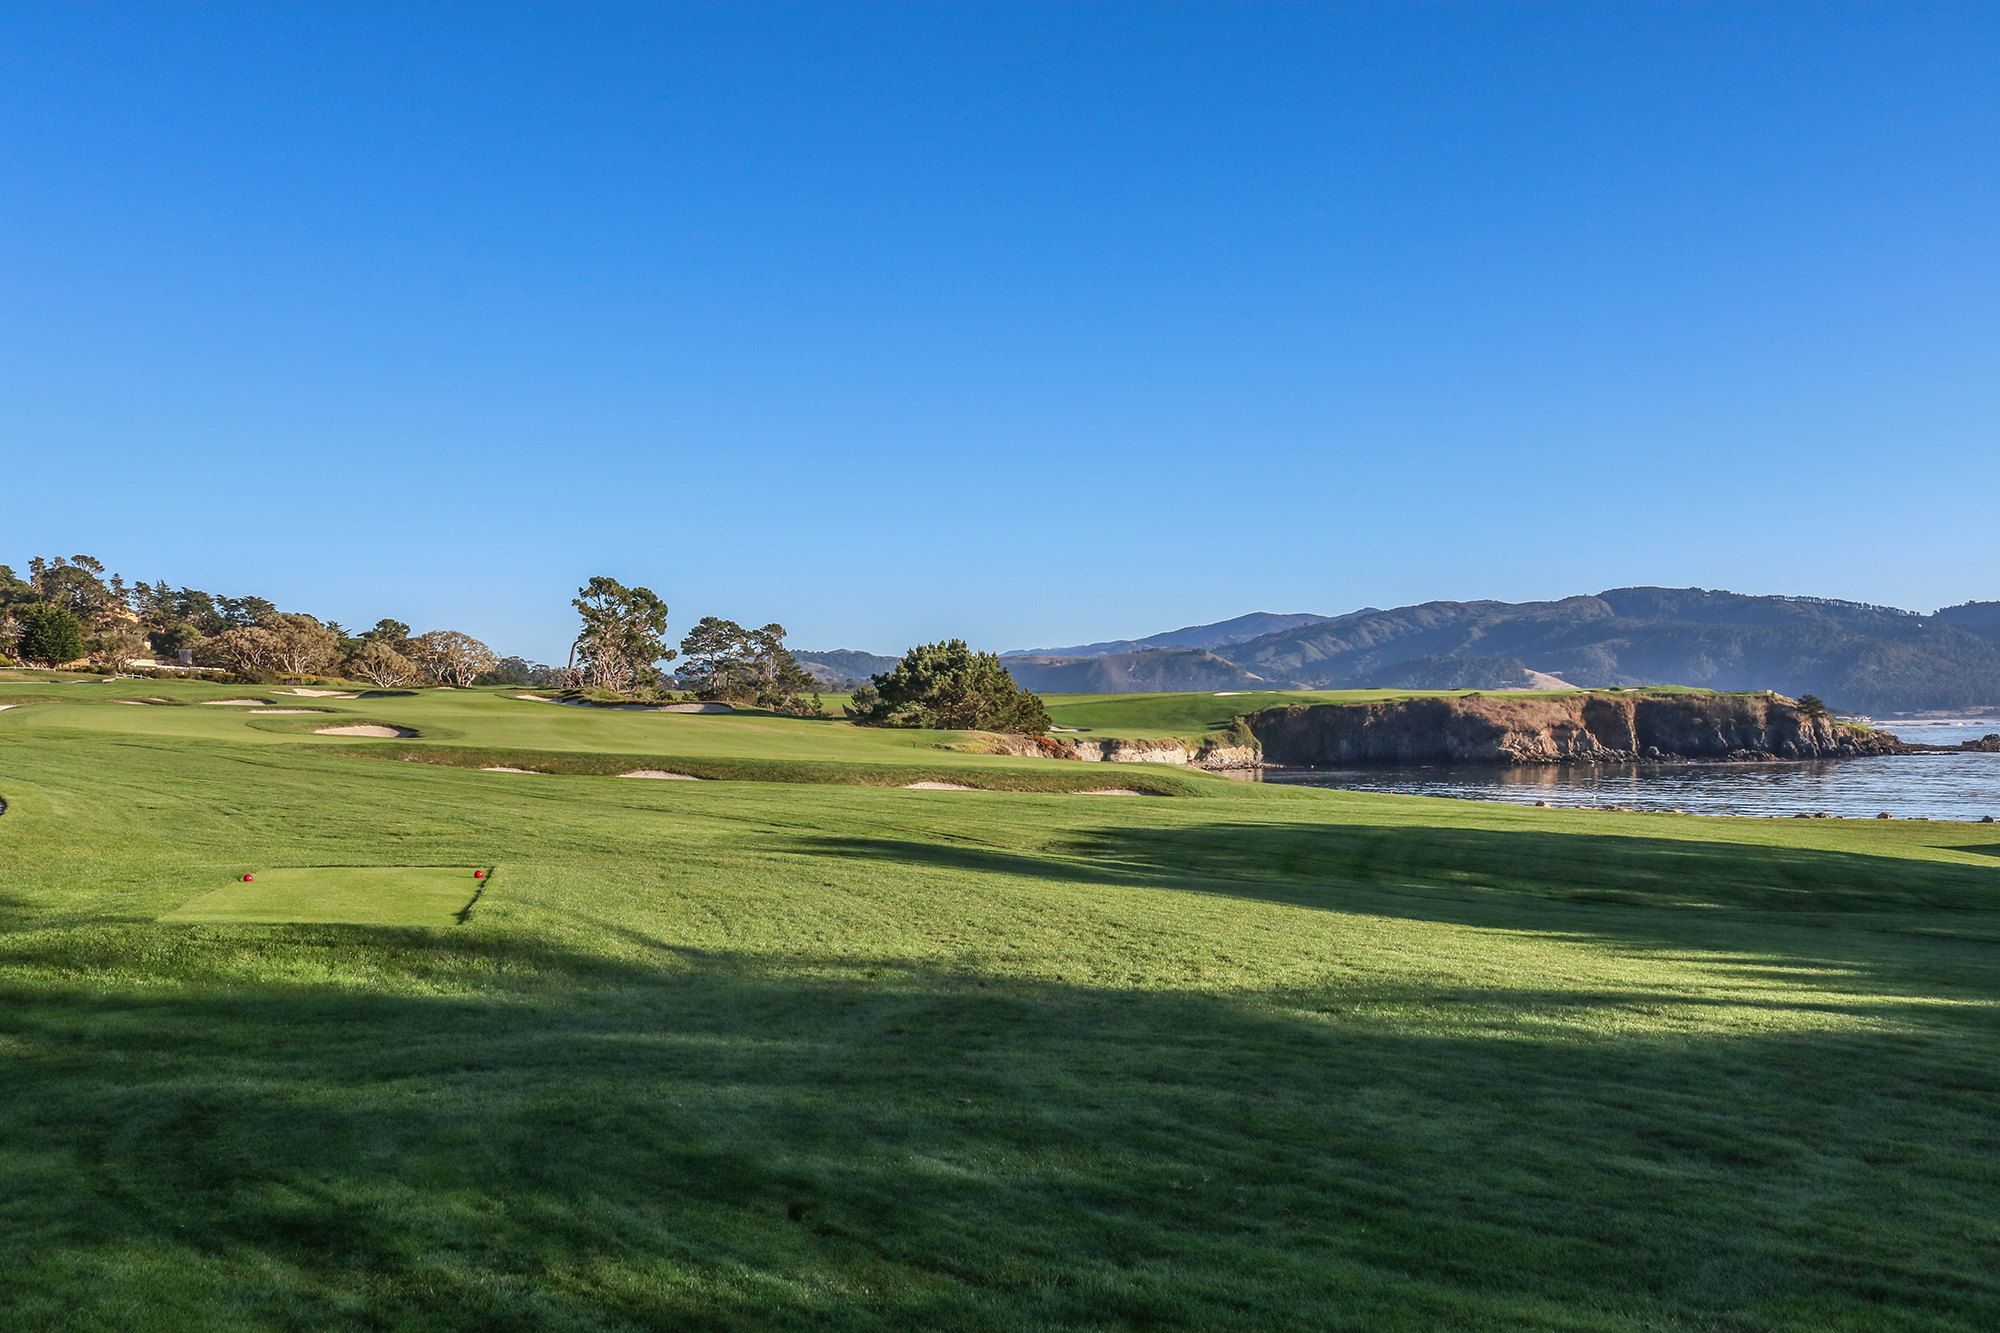 You Catch A Glimpse Of The Ocean In Horizon Above Third Green But Your Welcome To Pebble Beach Moment Arrives After Tee Off Fourth Hole